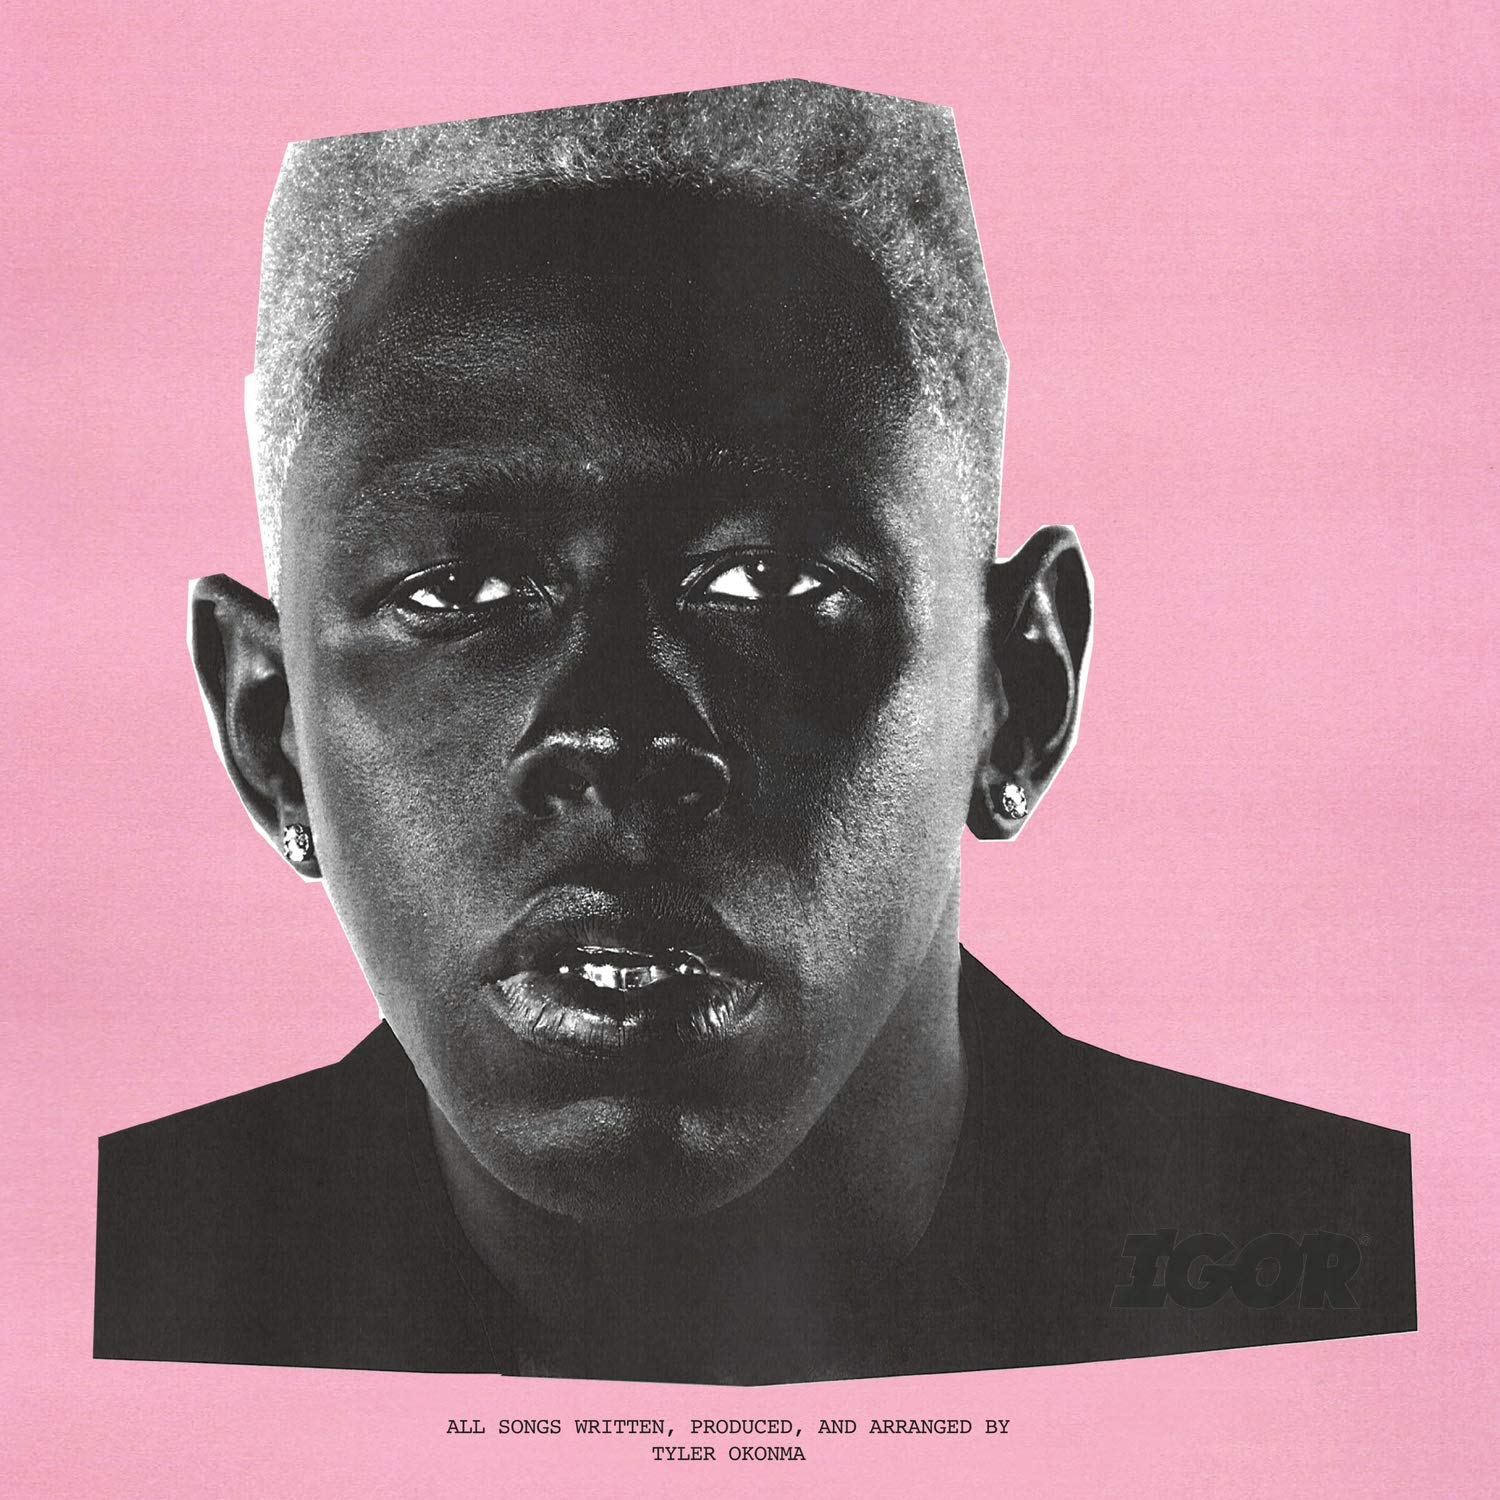 Tyler, The Creator - Igor [LP] (150 Gram Black Vinyl, printed inner sleeve, gatefold) - Urban Vinyl | Records, Headphones, and more.